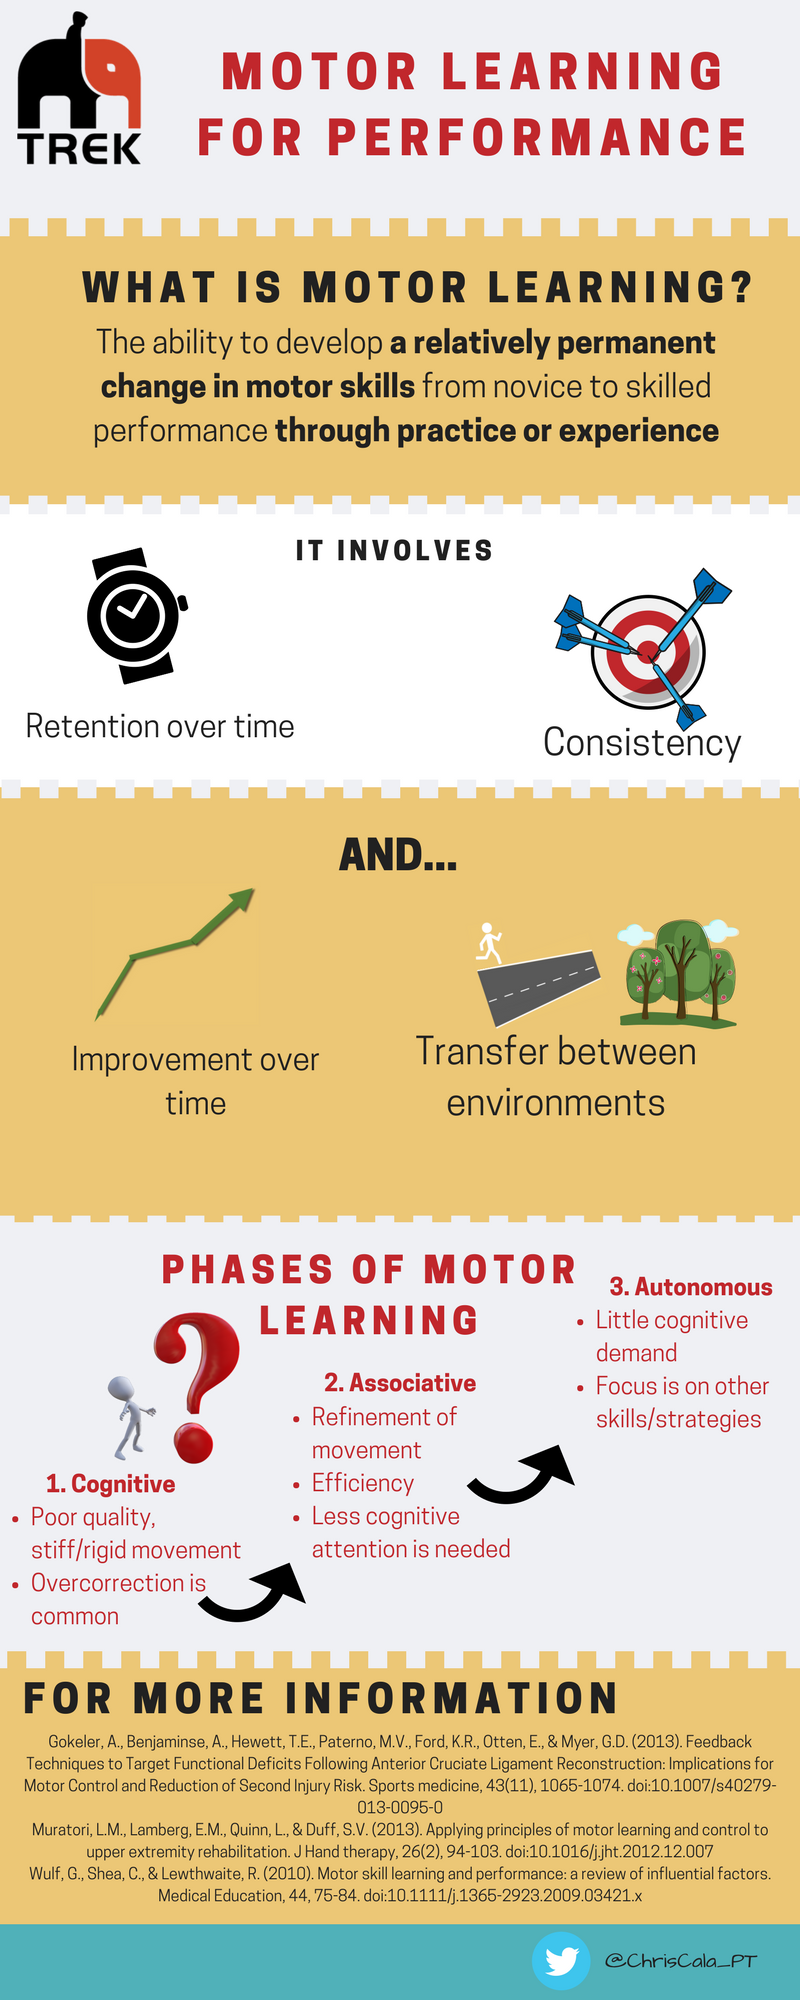 Motor learning for performance